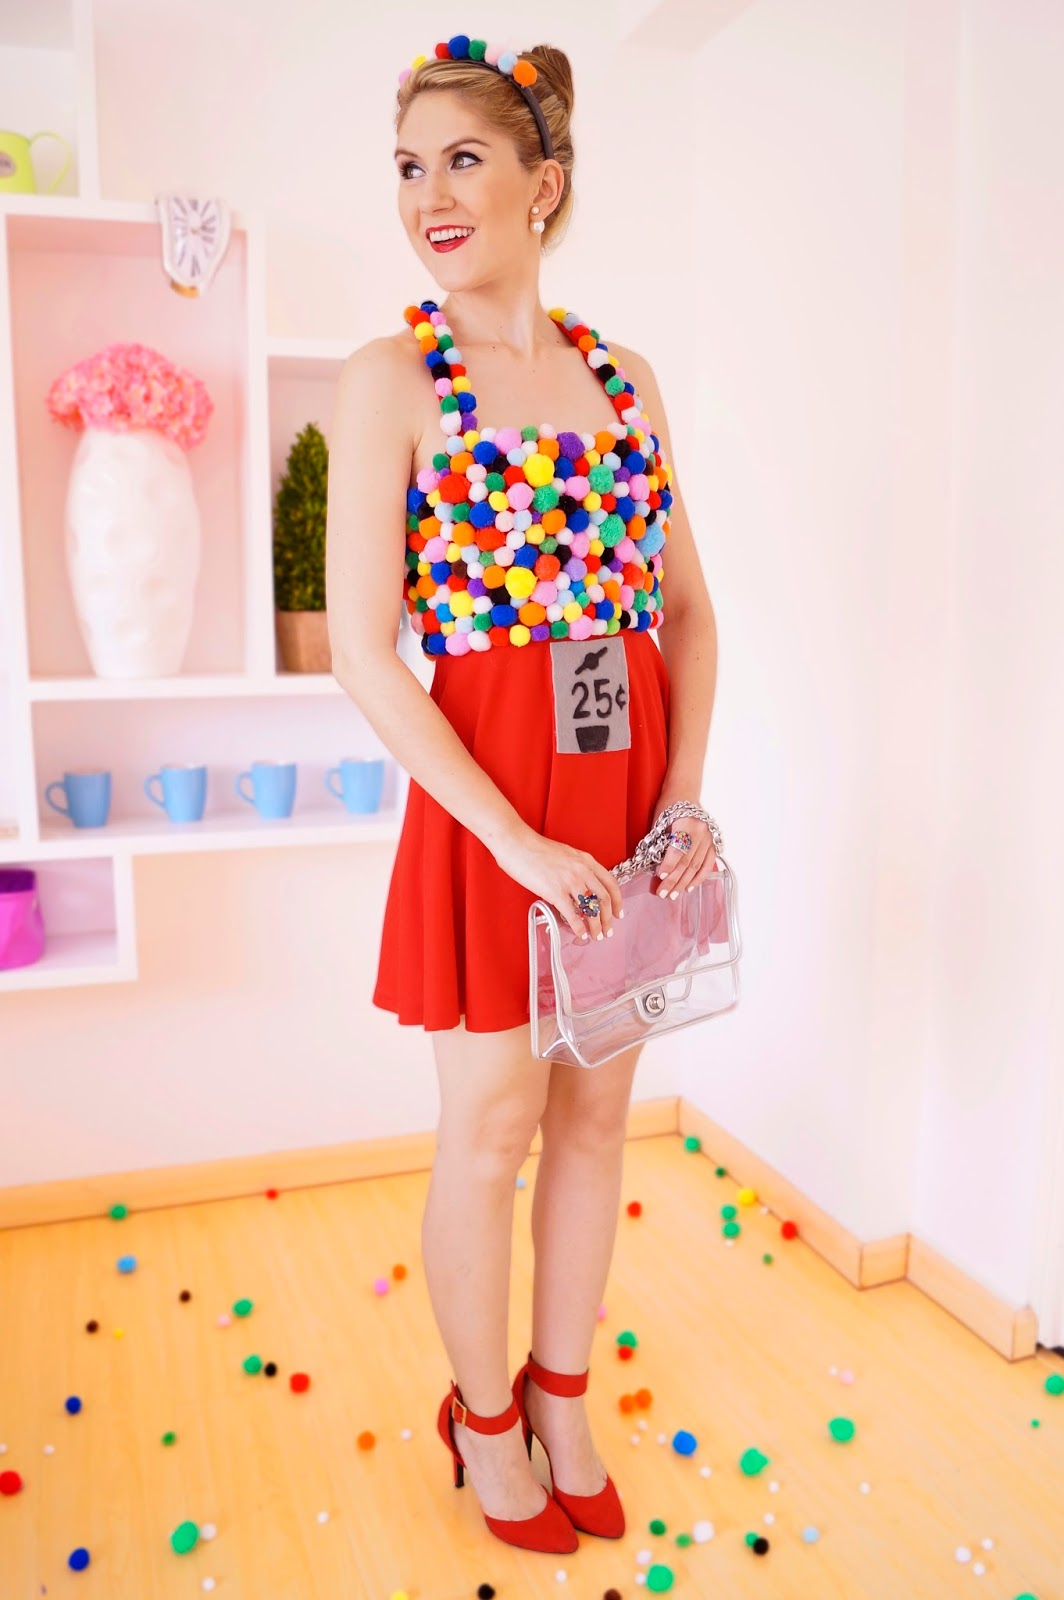 Easy Homemade Gumball Machine Costume Tutorial for Halloween